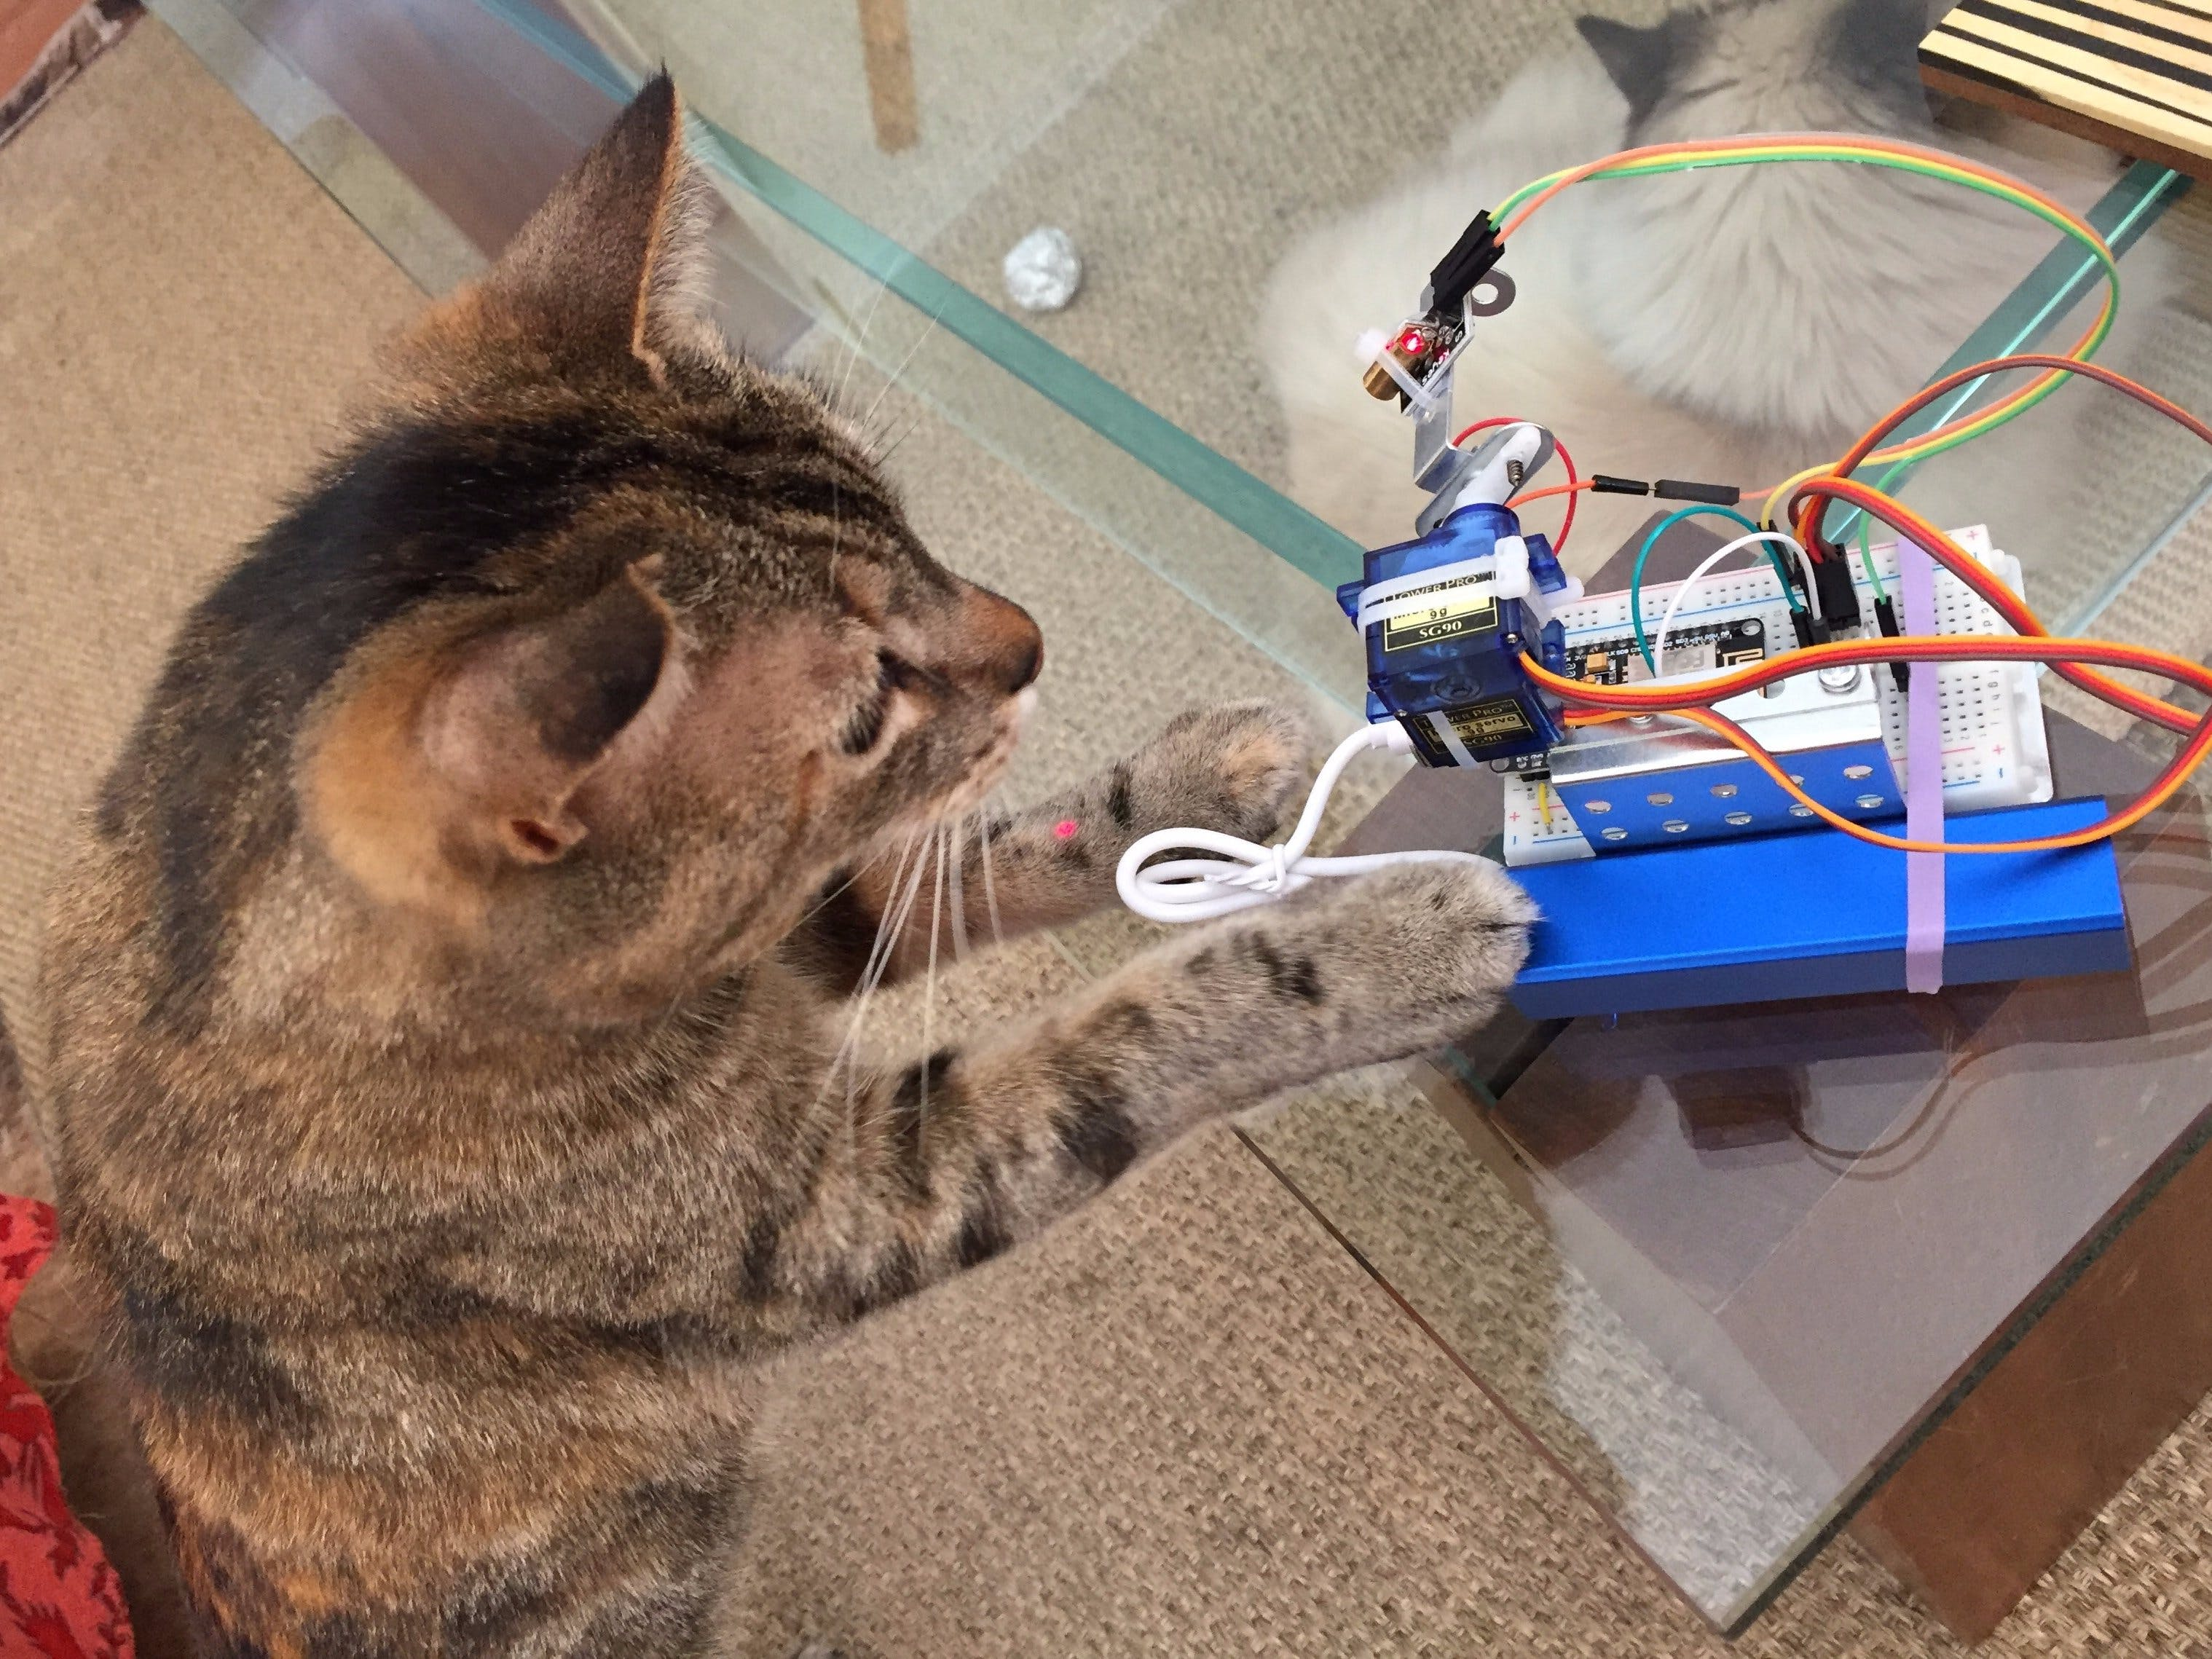 LaserCat - IoT With NodeMCU and Blynk